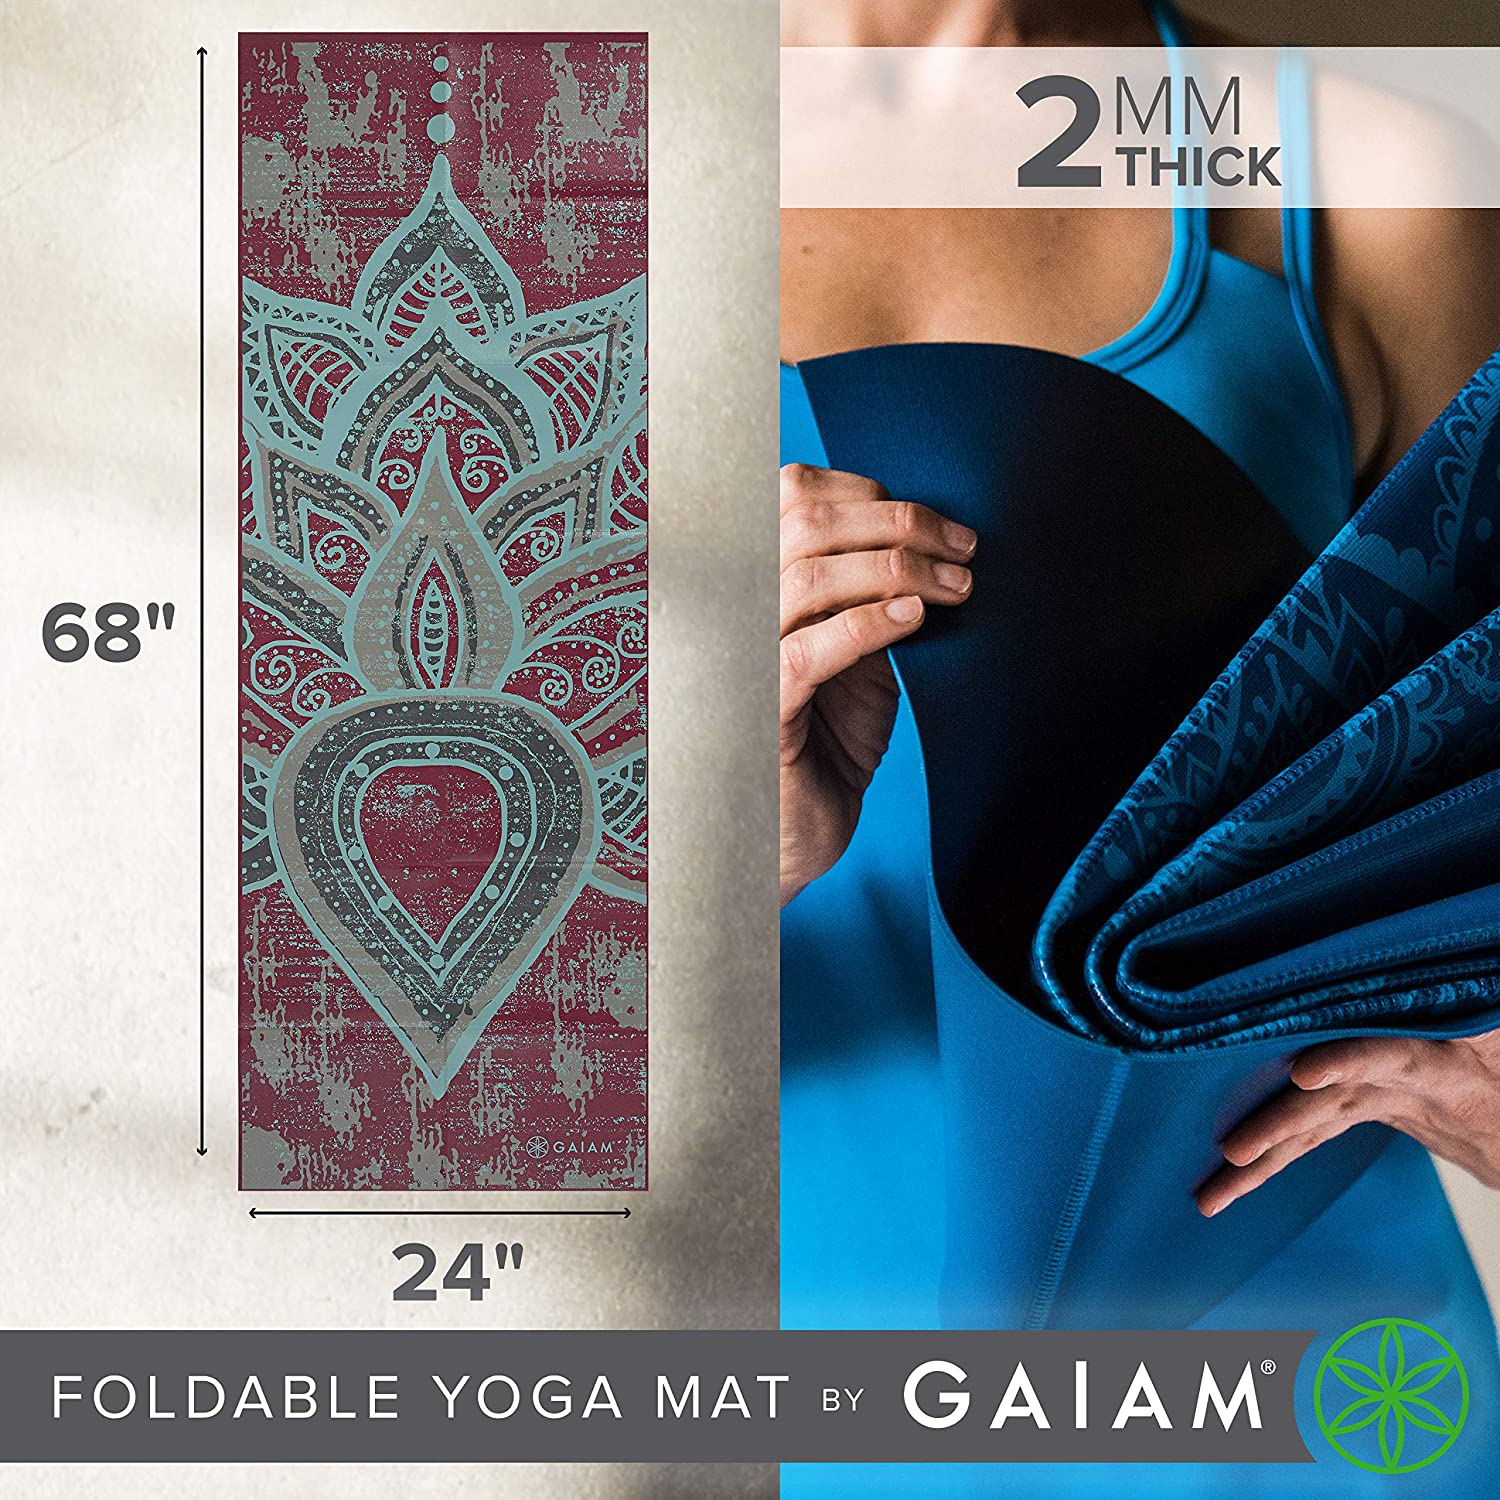 06ade30d79a Amazon.com : Gaiam Foldable Yoga Mat, Be Free, 2mm : Sports & Outdoors